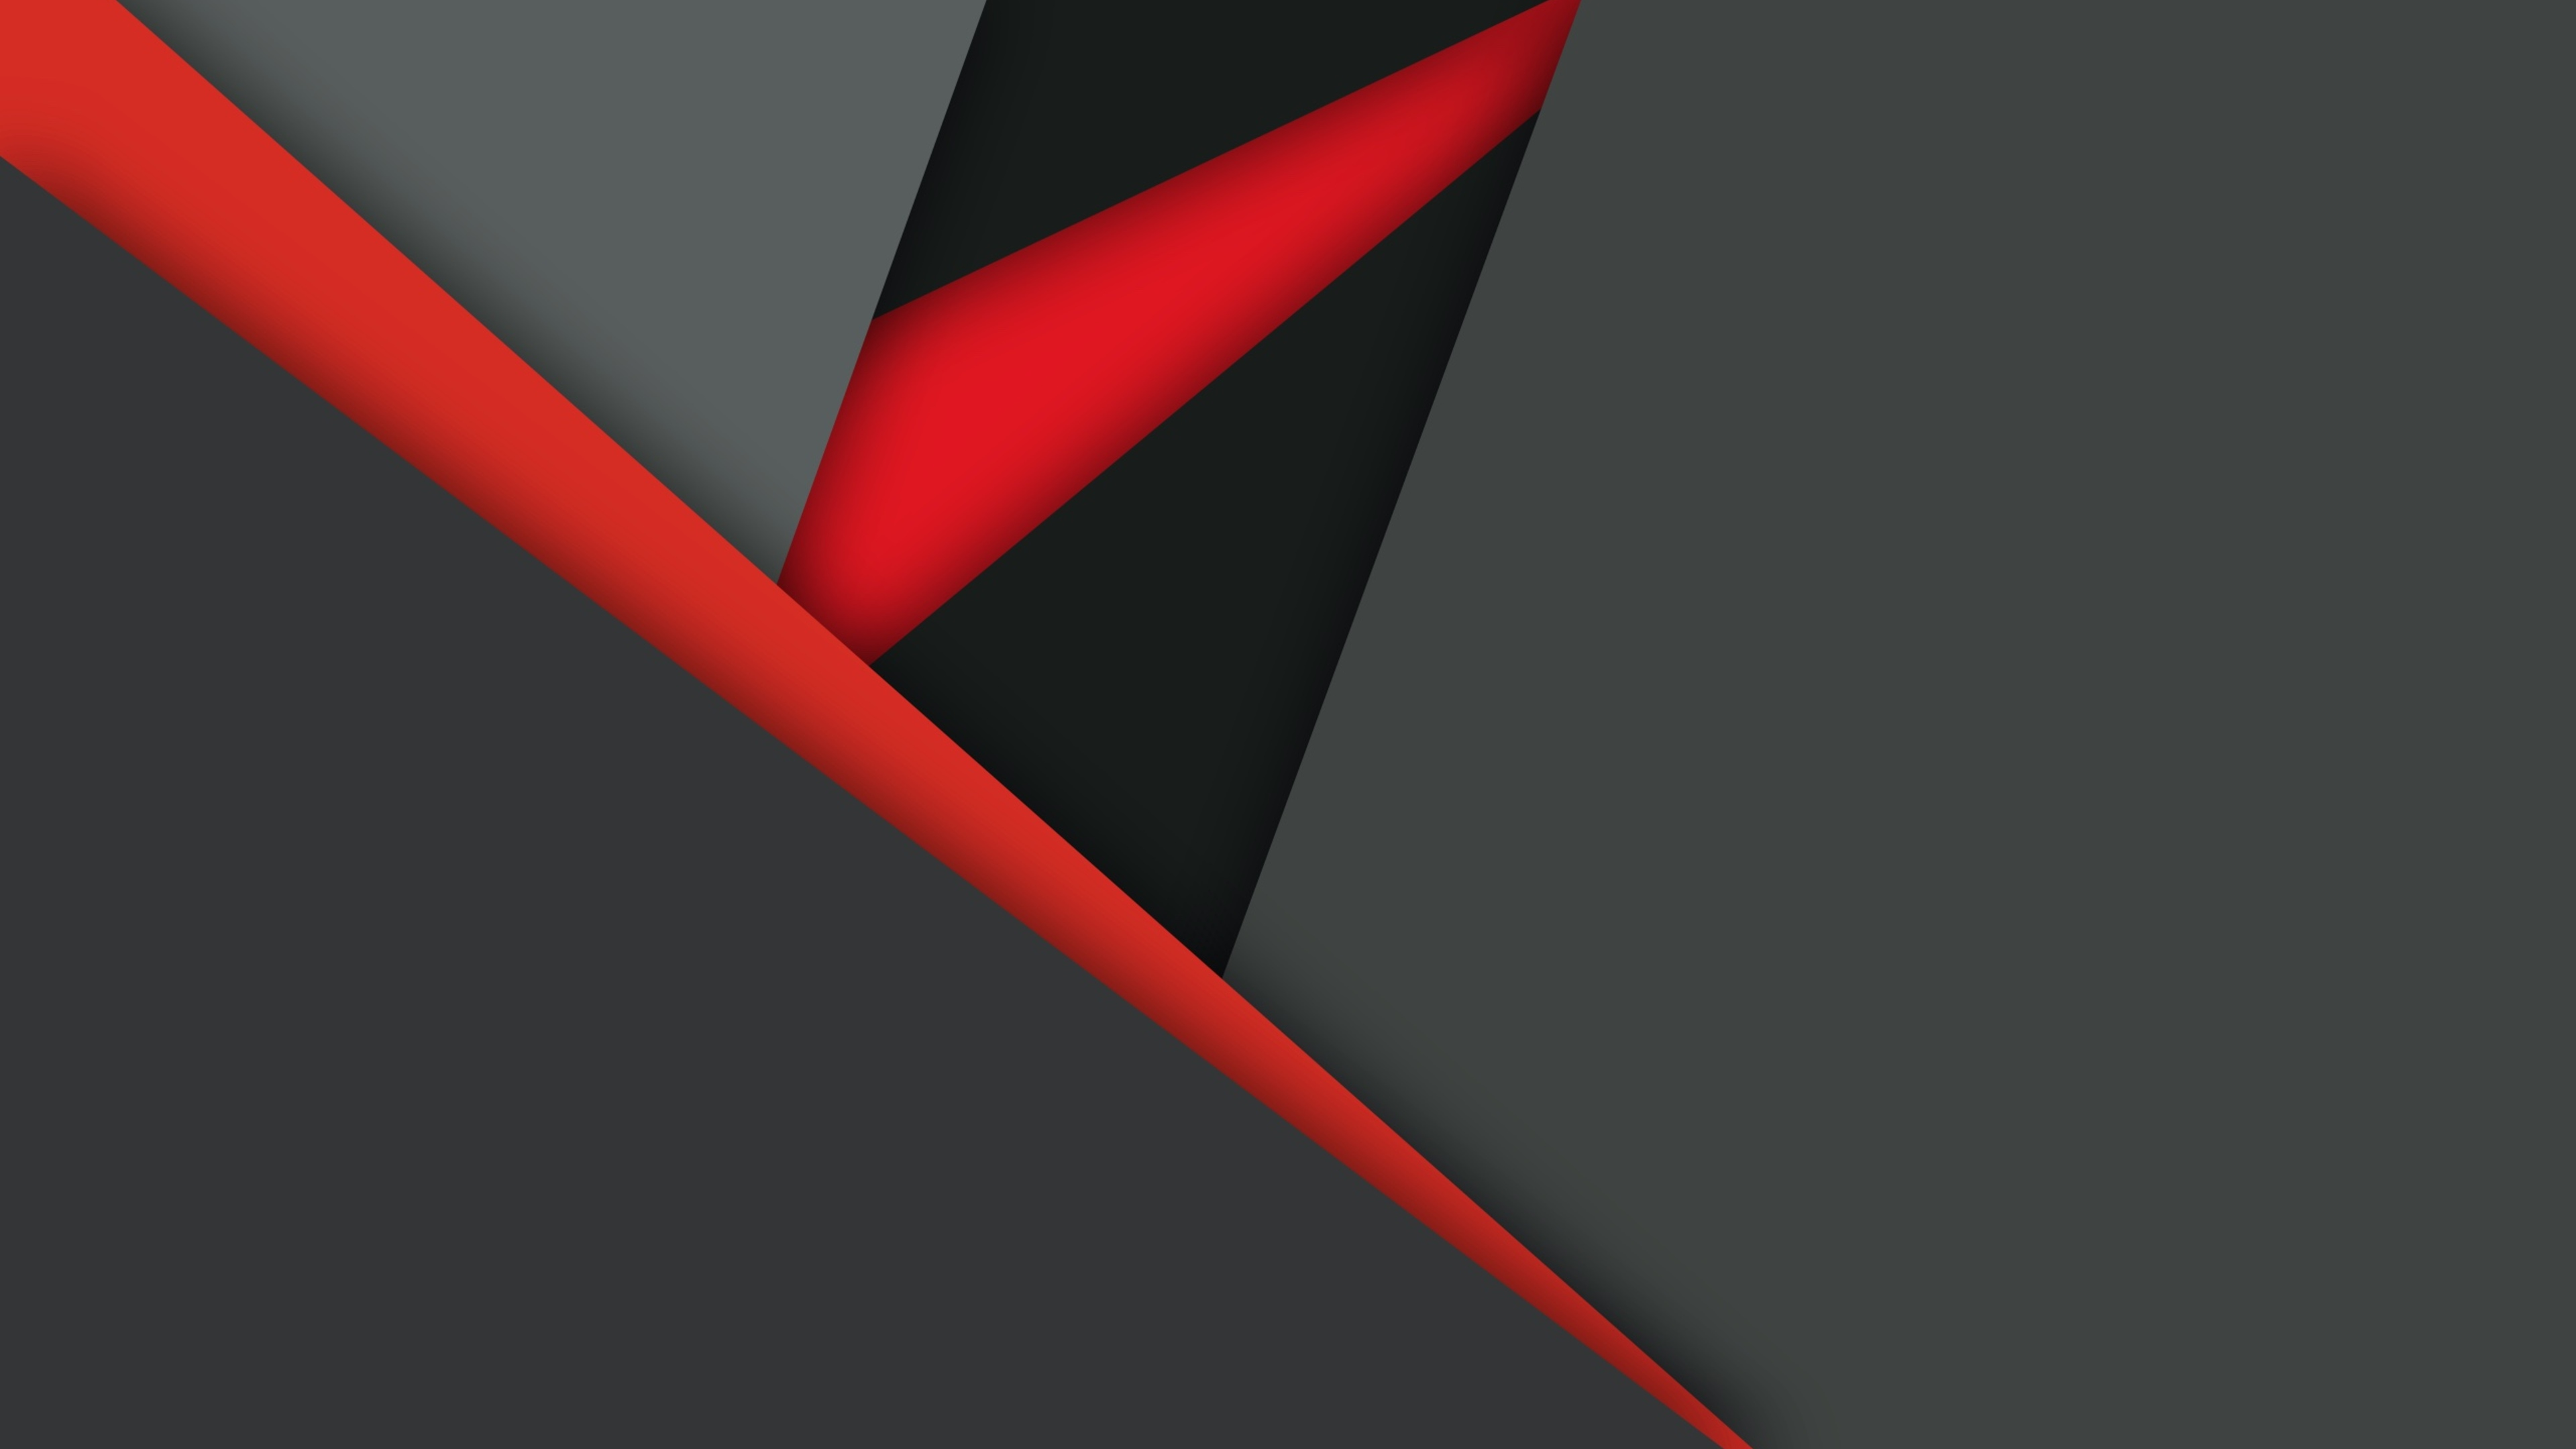 3840x2160 material design dark red black 4k hd 4k for Material design wallpaper 4k